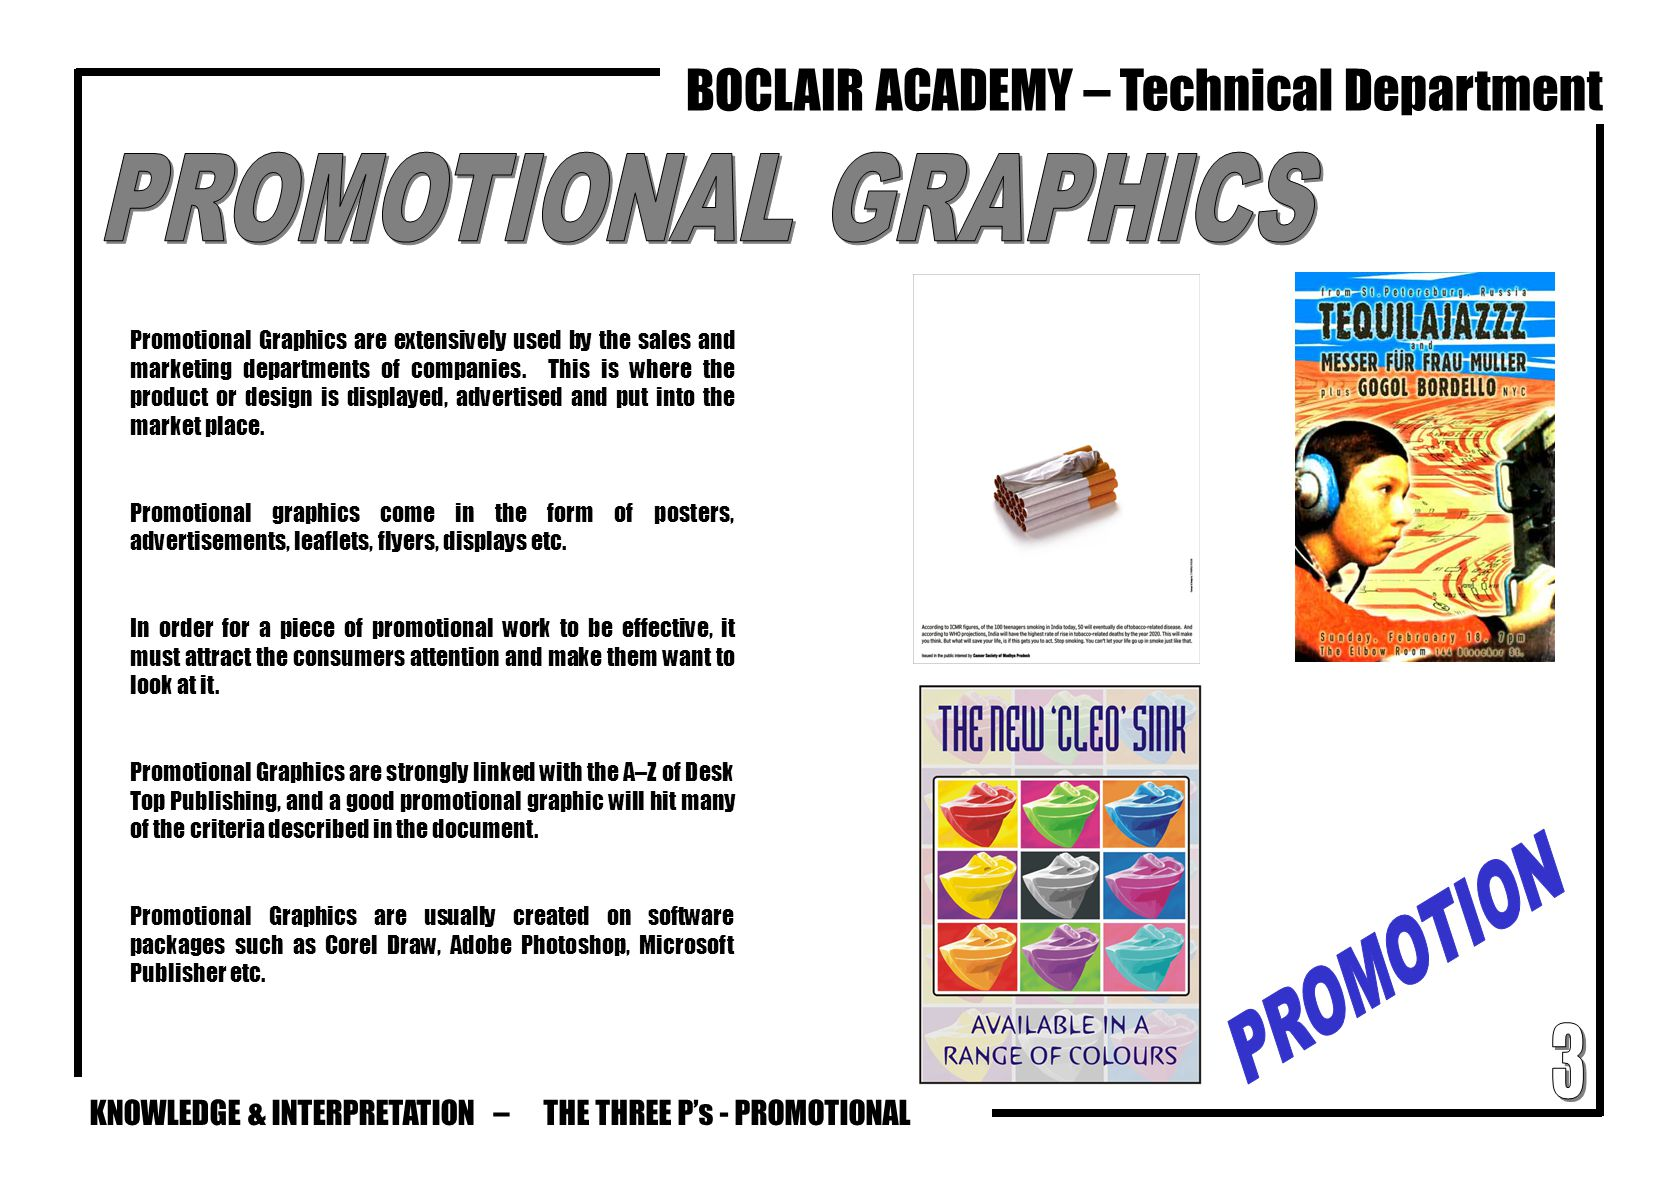 PROMOTIONAL GRAPHICS PROMOTION 3 THE THREE P's - PROMOTIONAL